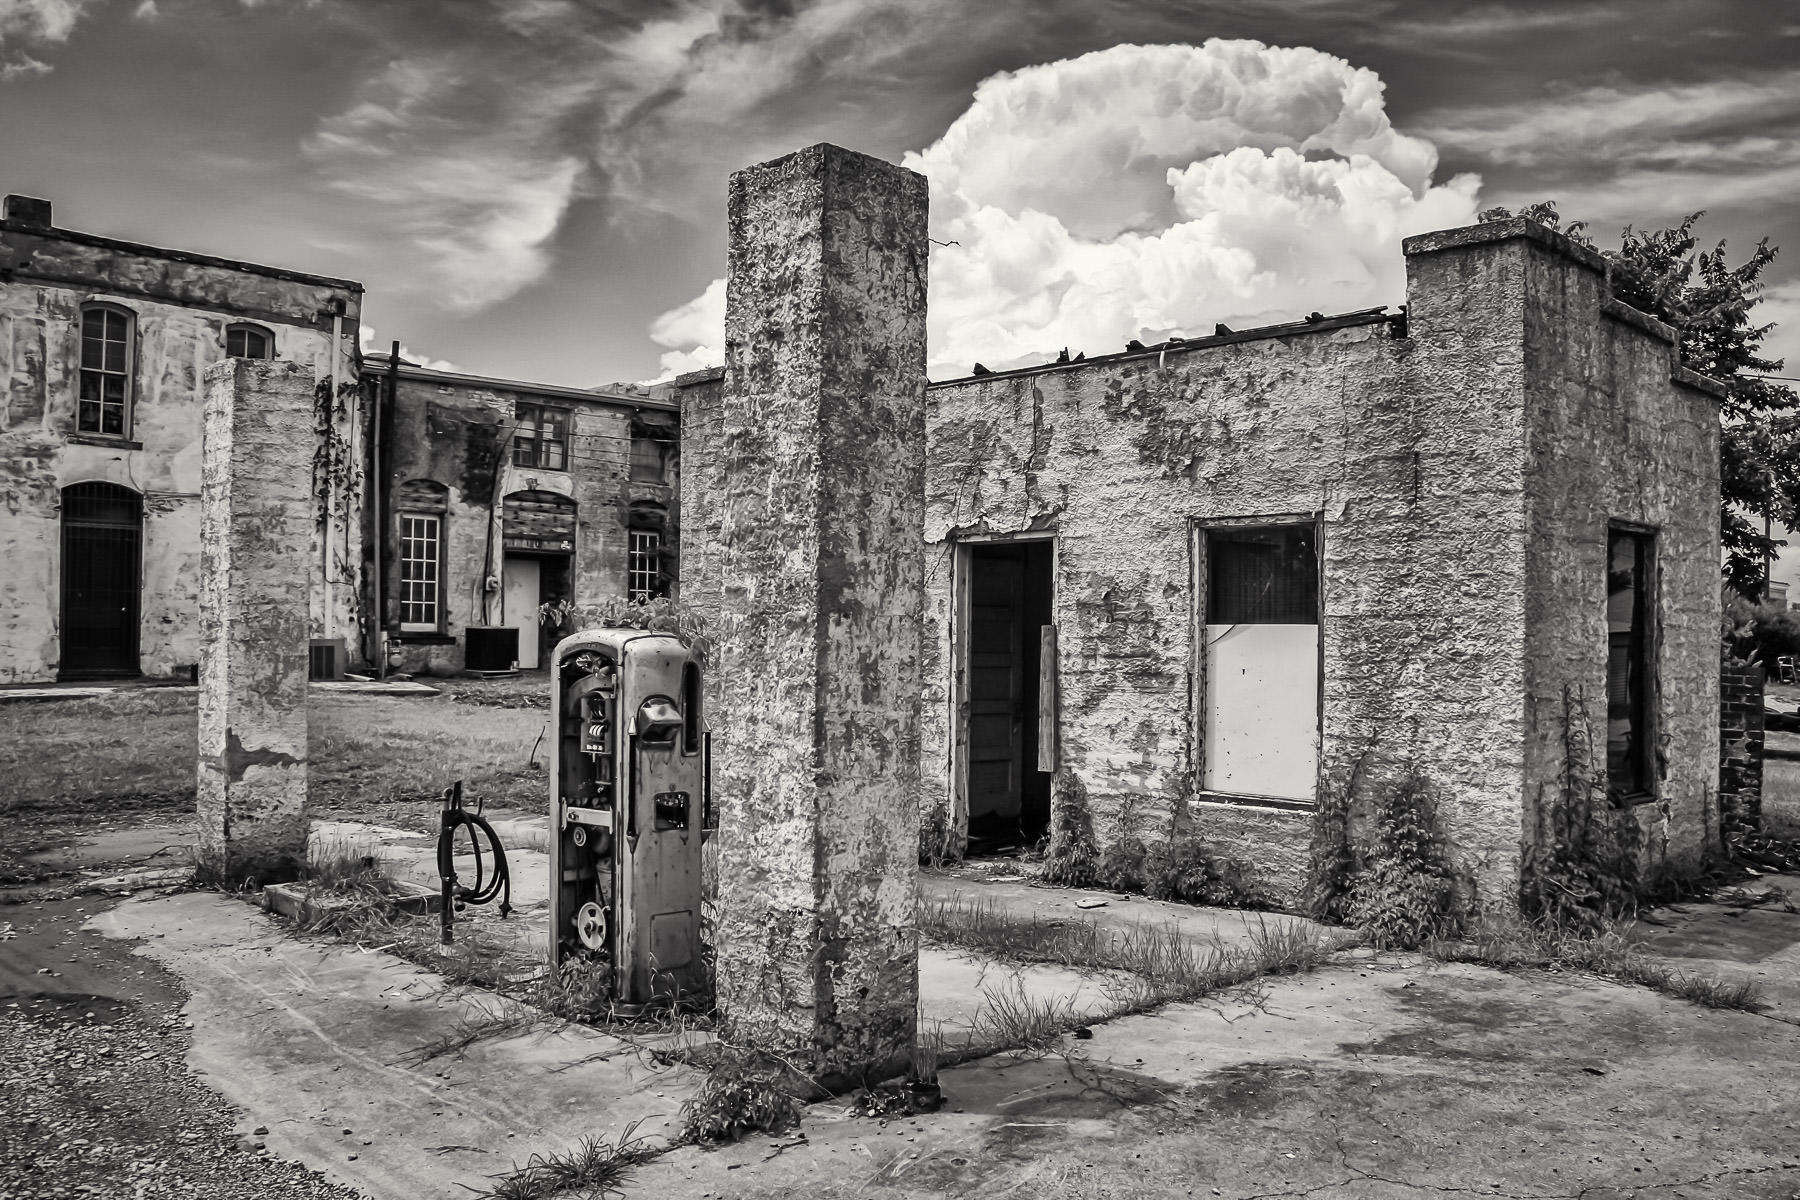 A dead gas station in the dying town of Pilot Point, Texas.